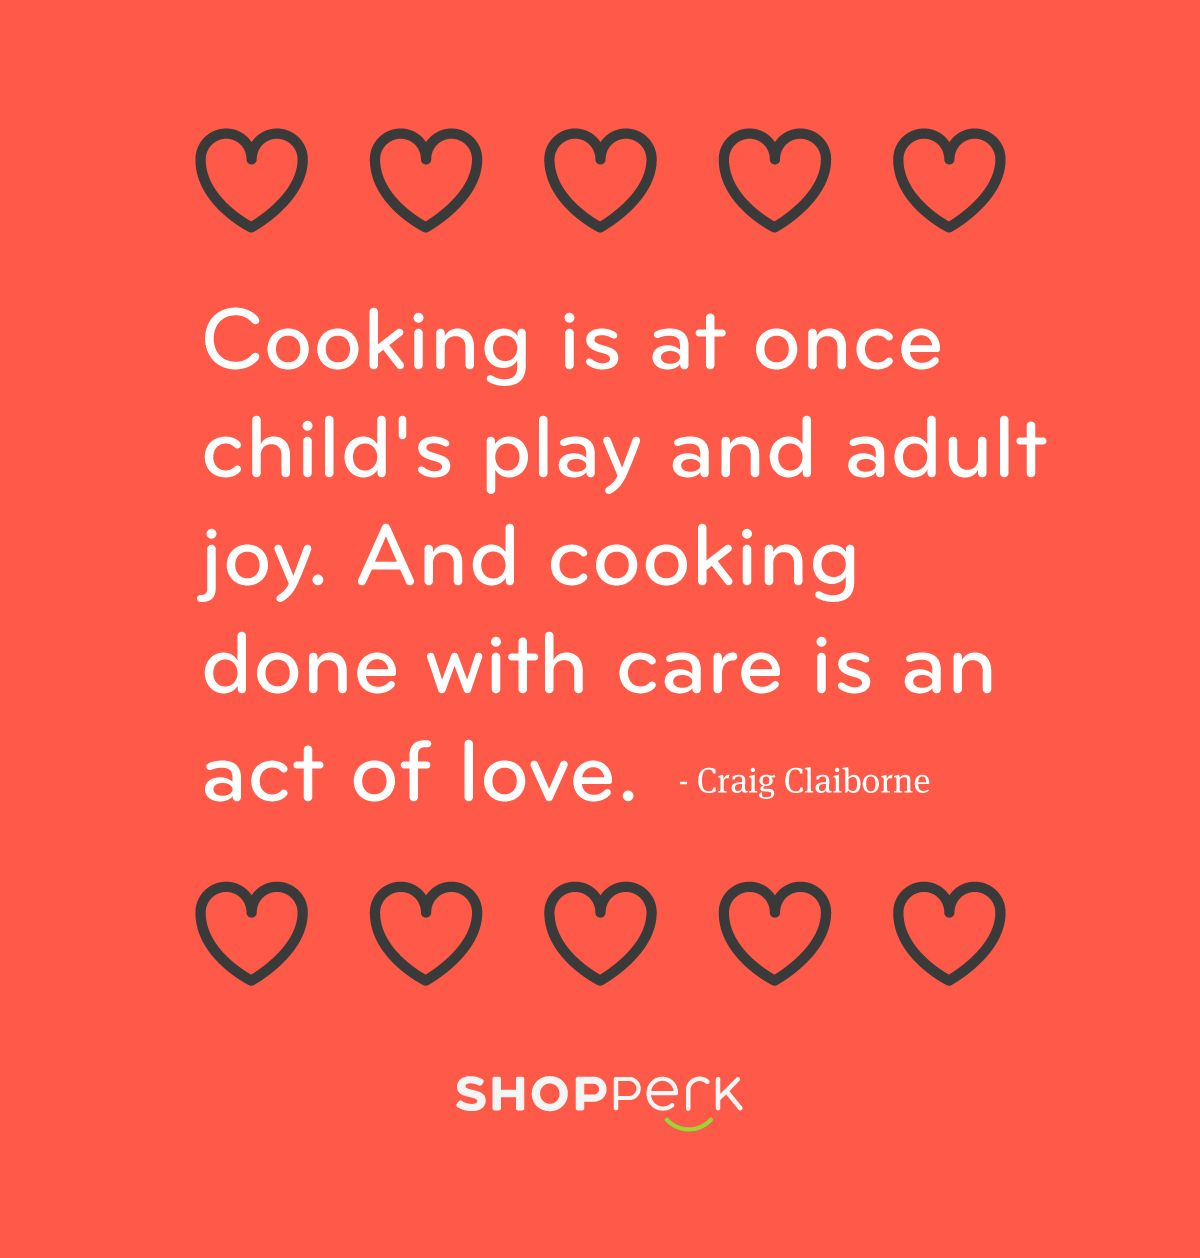 Cooking done with care is an act of love for Kitchen quotation